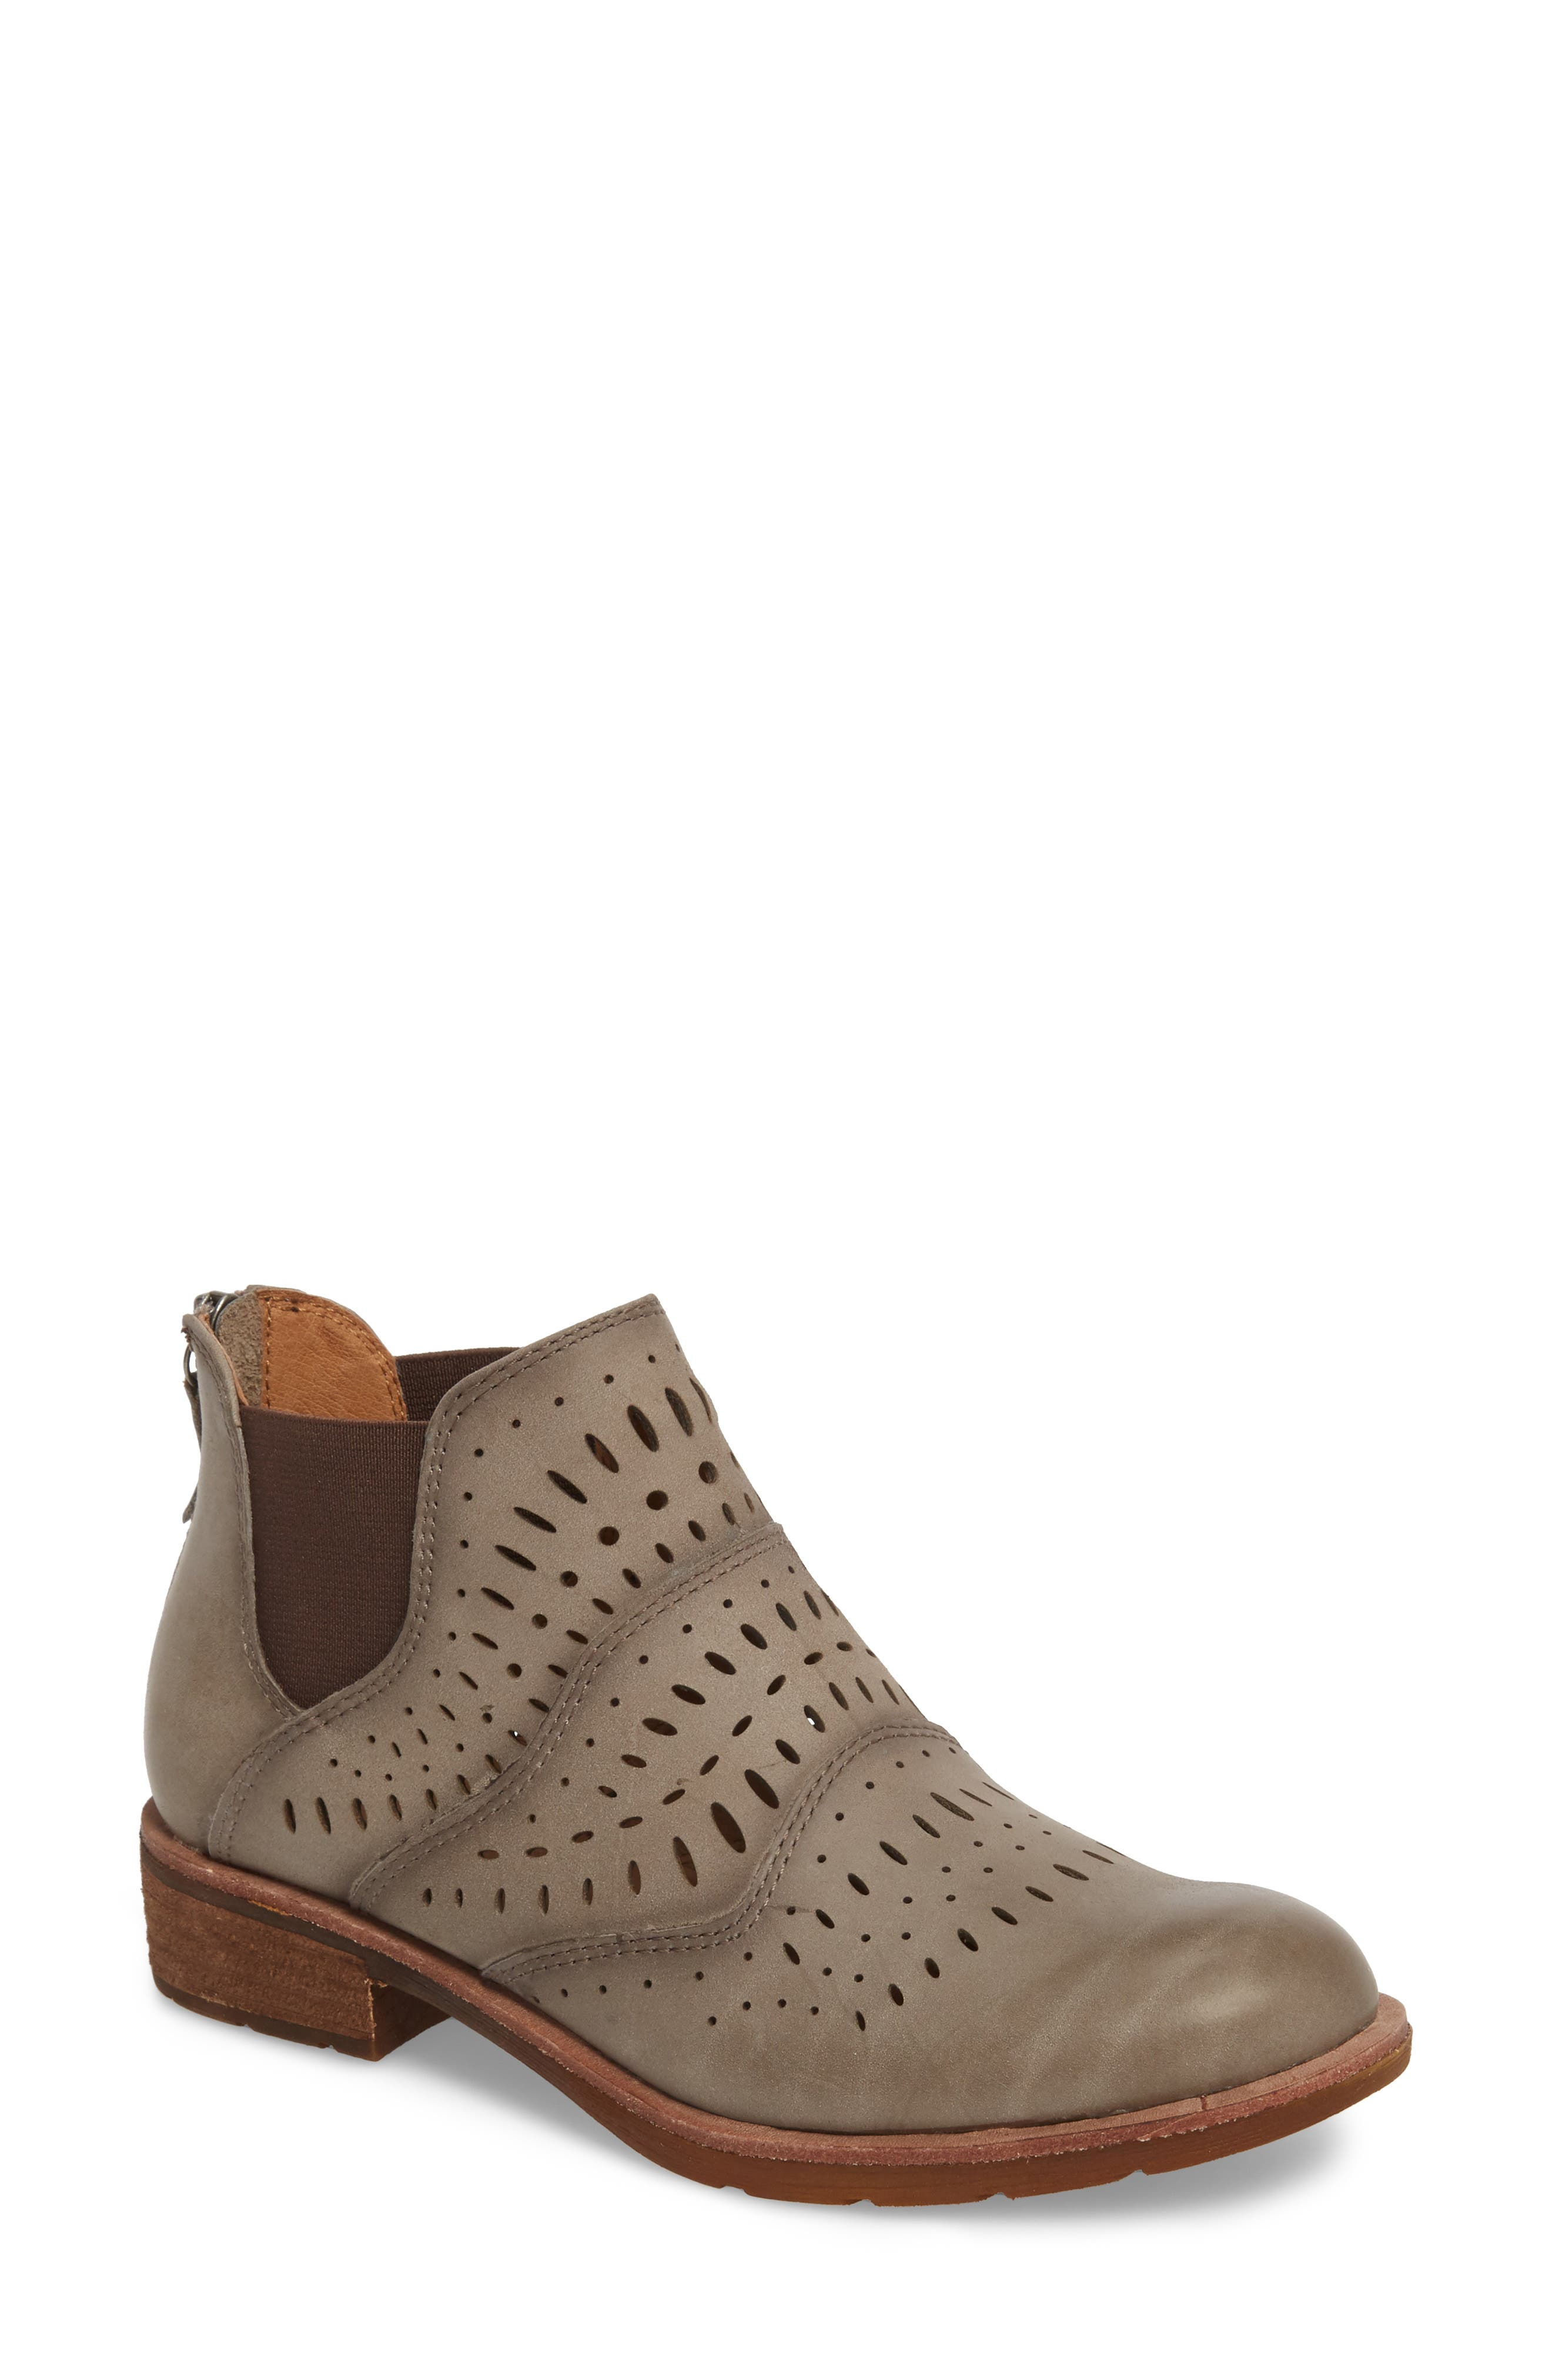 Brenley Bootie,                         Main,                         color, PAPER MACHE GREY LEATHER